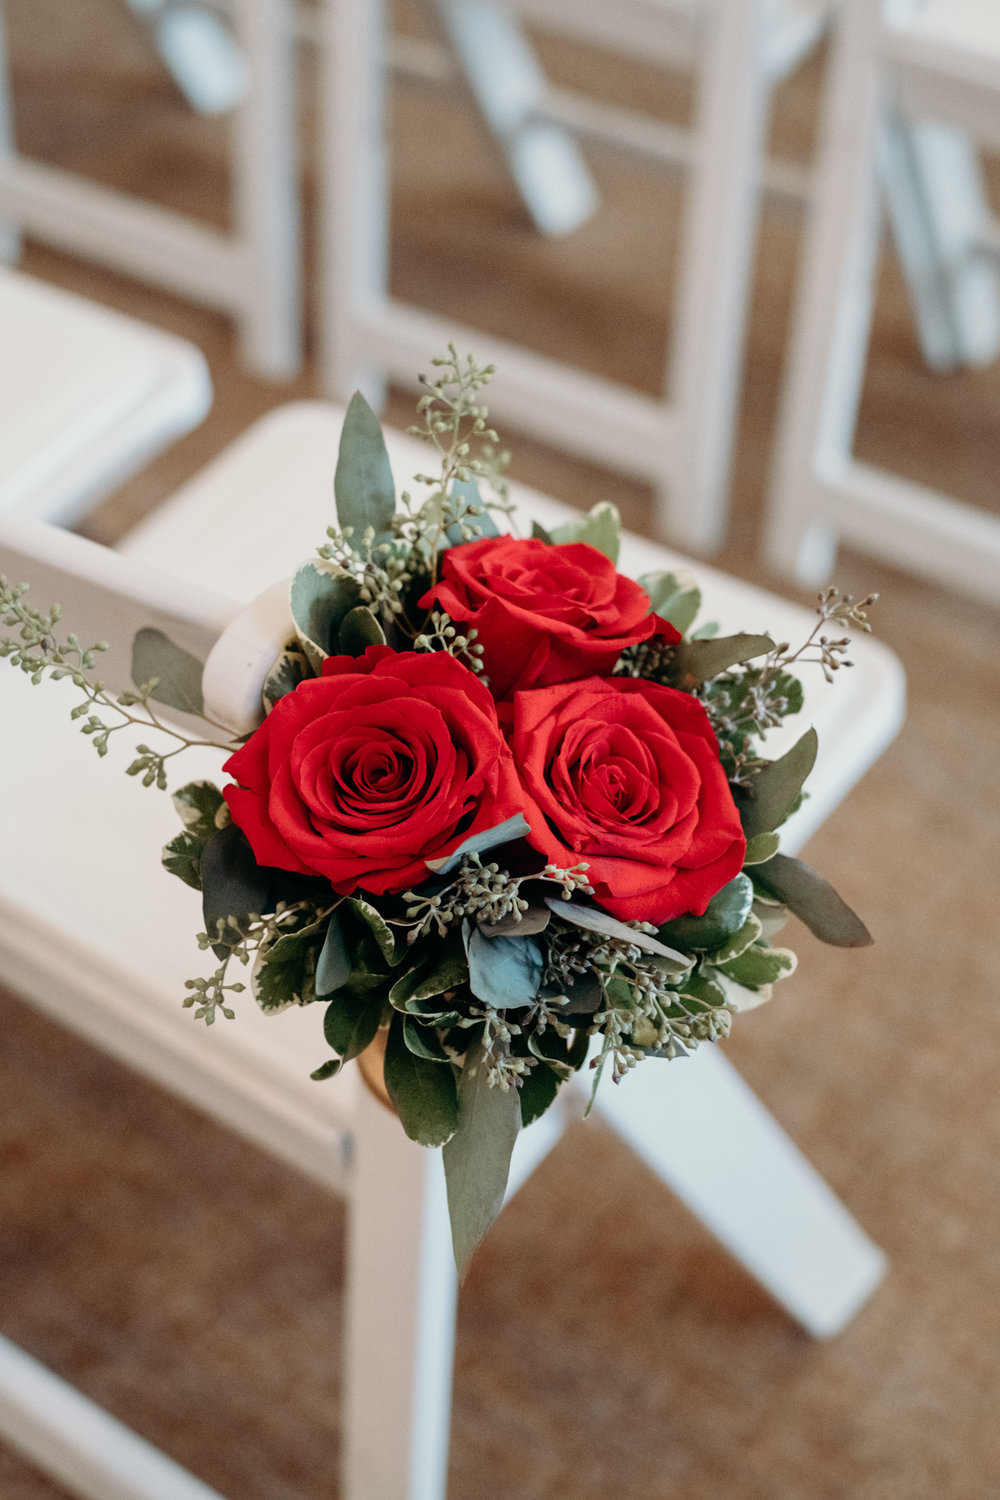 floral arrangement on ceremony chairs at middleburg wedding